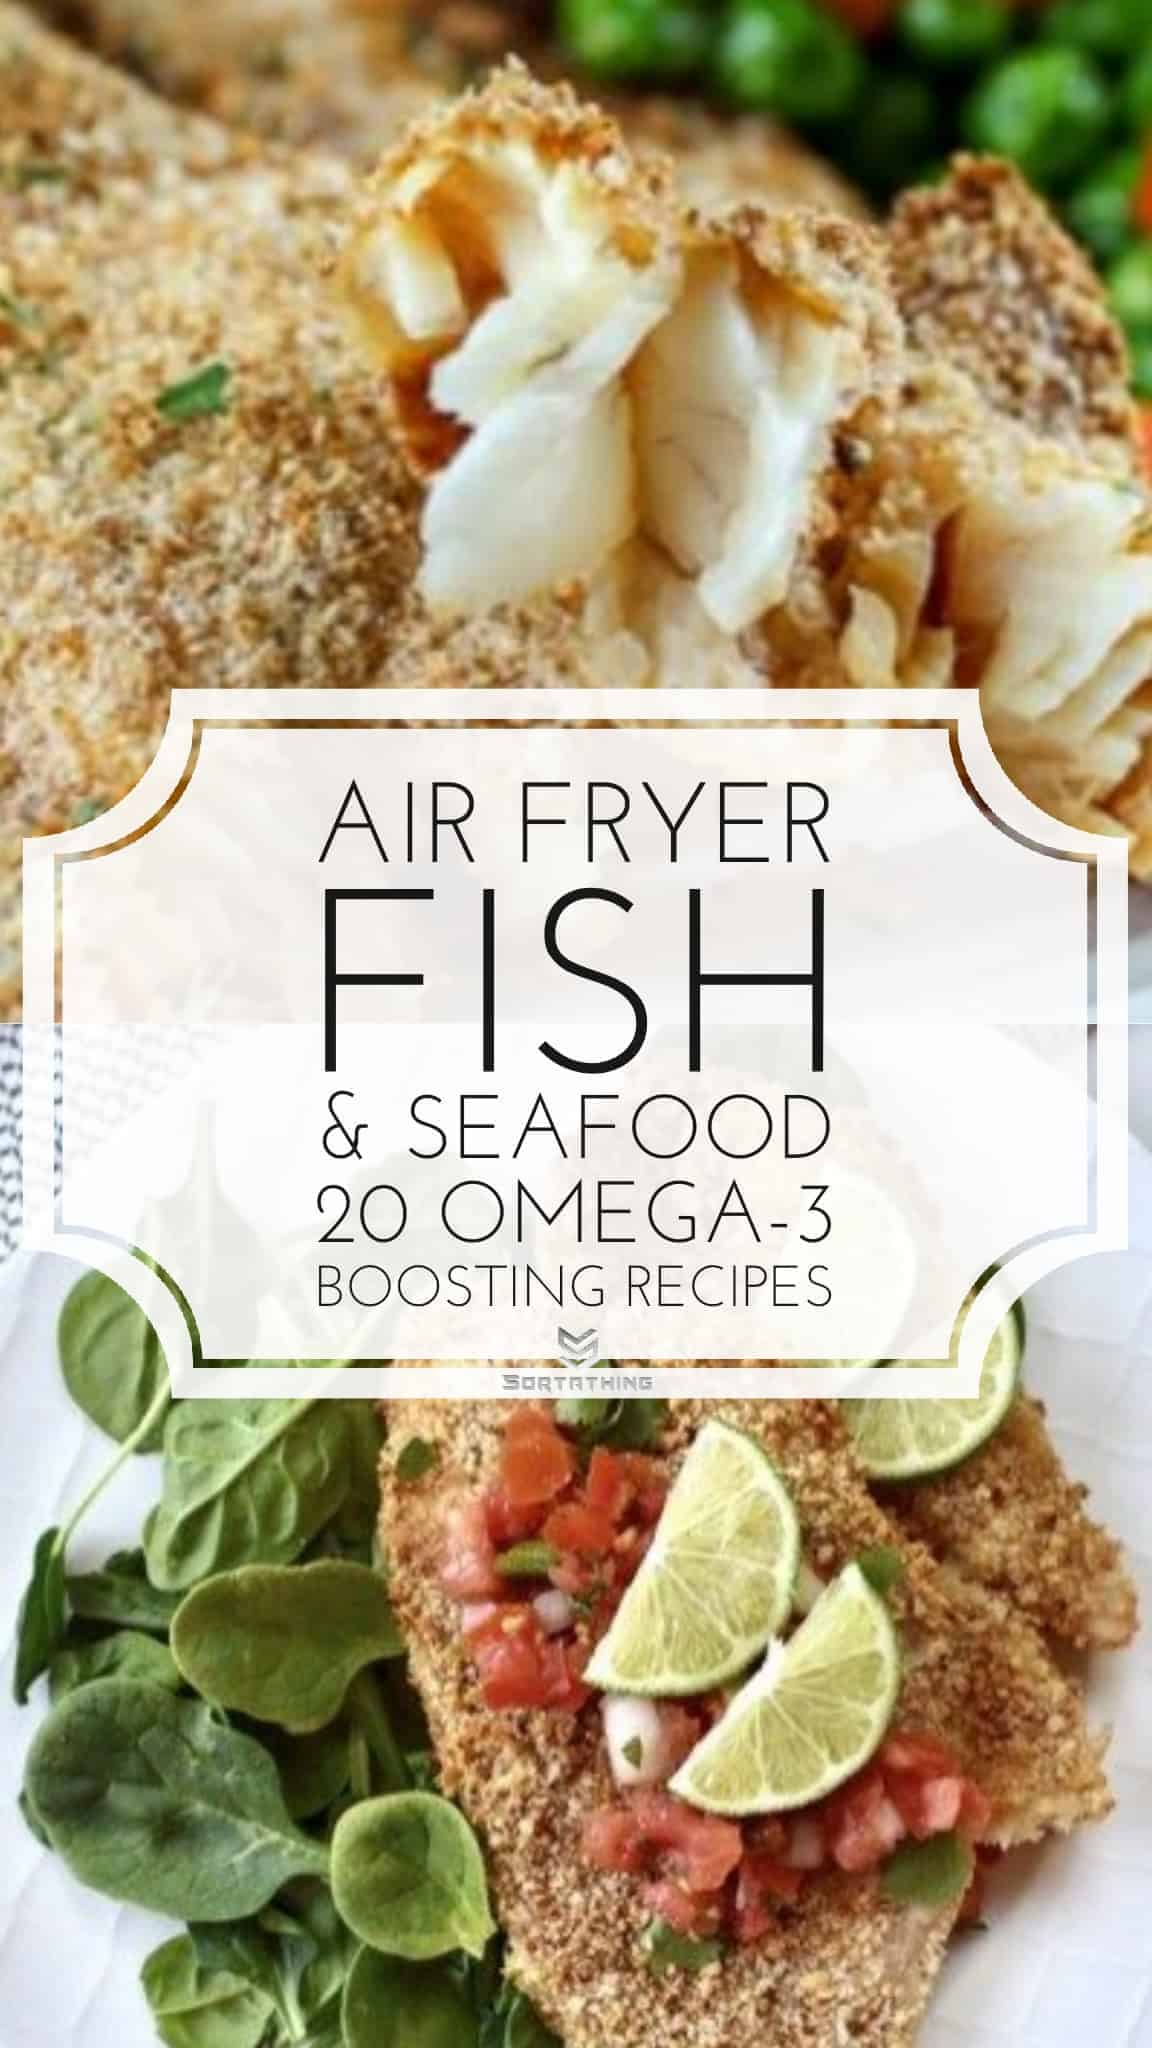 Air Fryer Tilapia & Air Fryer Chilli Lime Tilapia